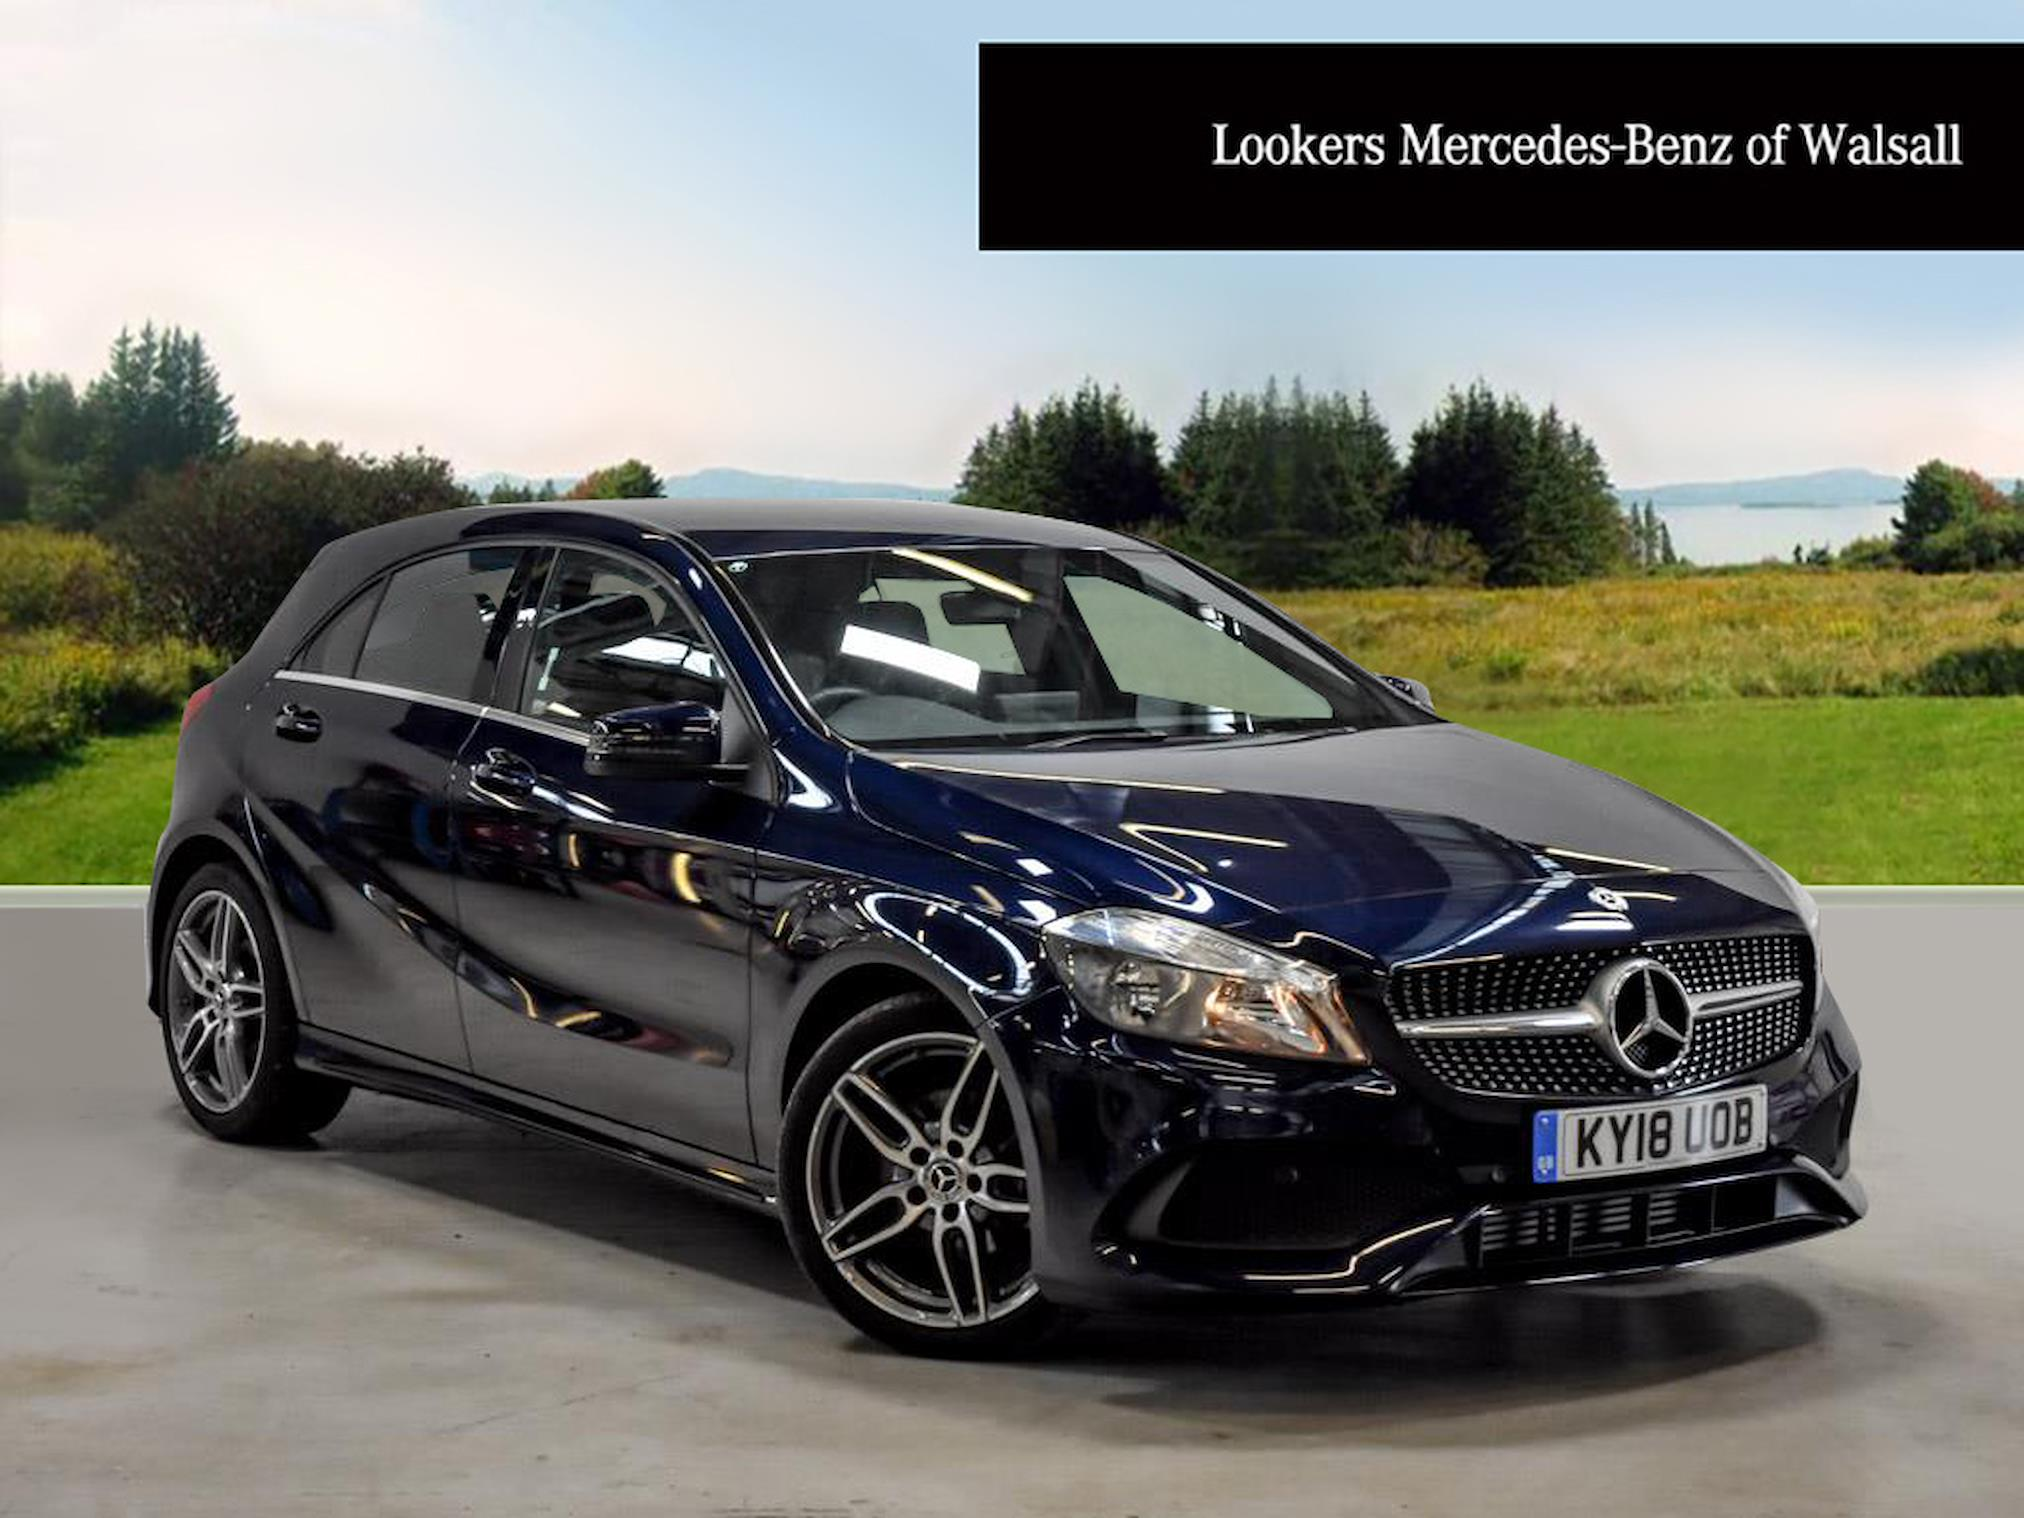 Used A CLASS MERCEDES-BENZ A200D Amg Line 5Dr Auto 2018 | Lookers